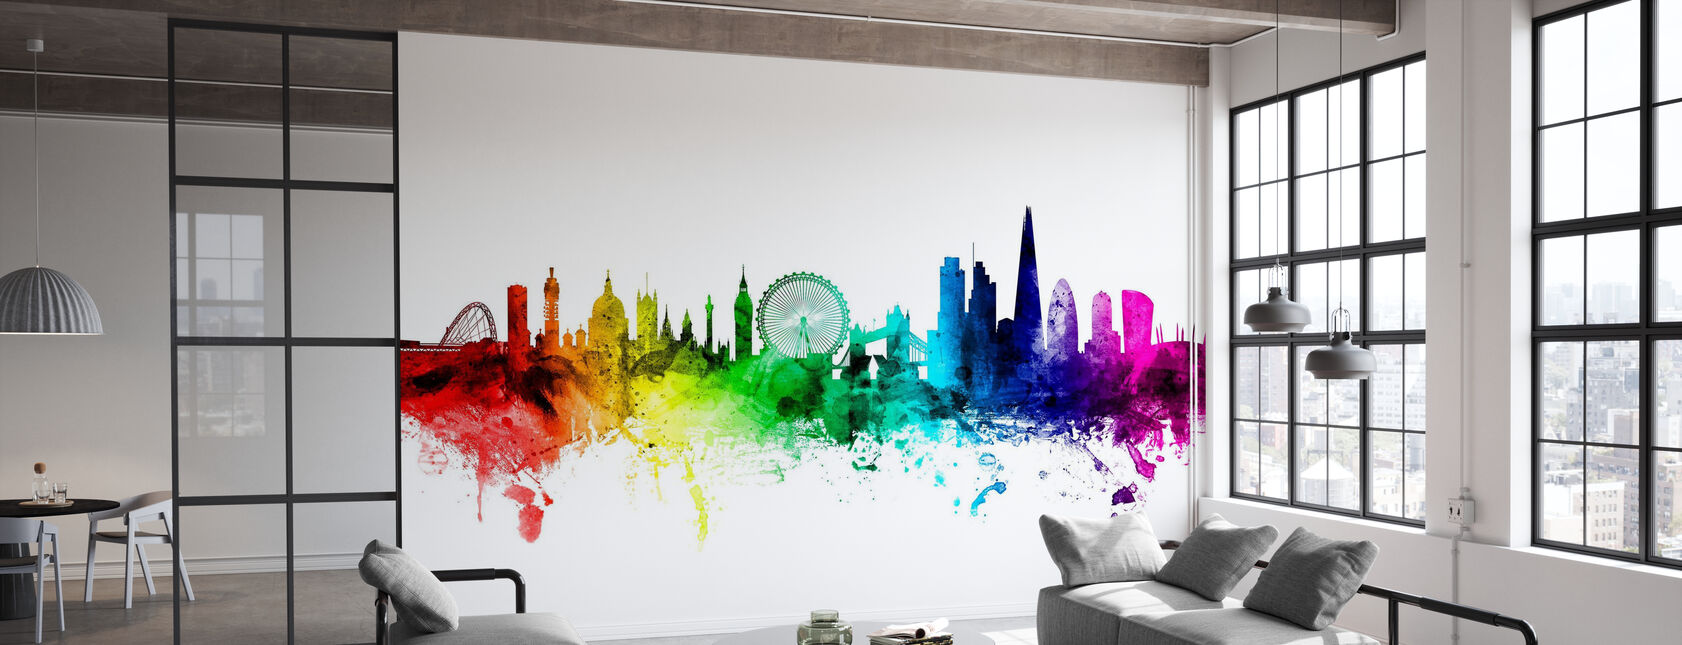 London Skyline Rainbow - Wallpaper - Office